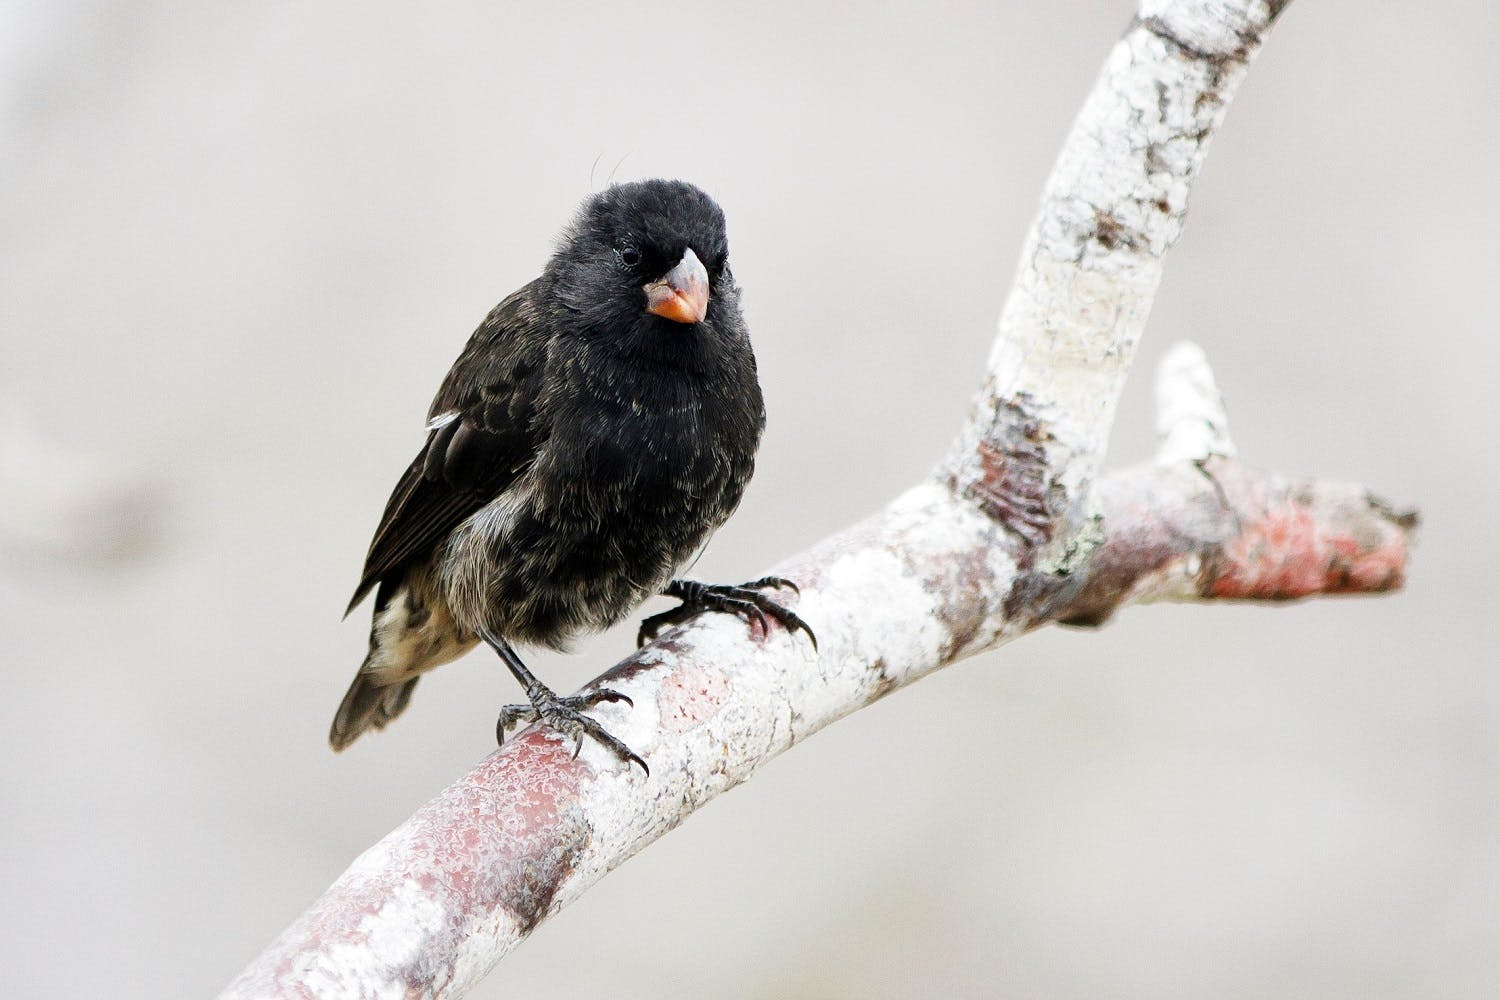 Darwin's finches in the Galapagos